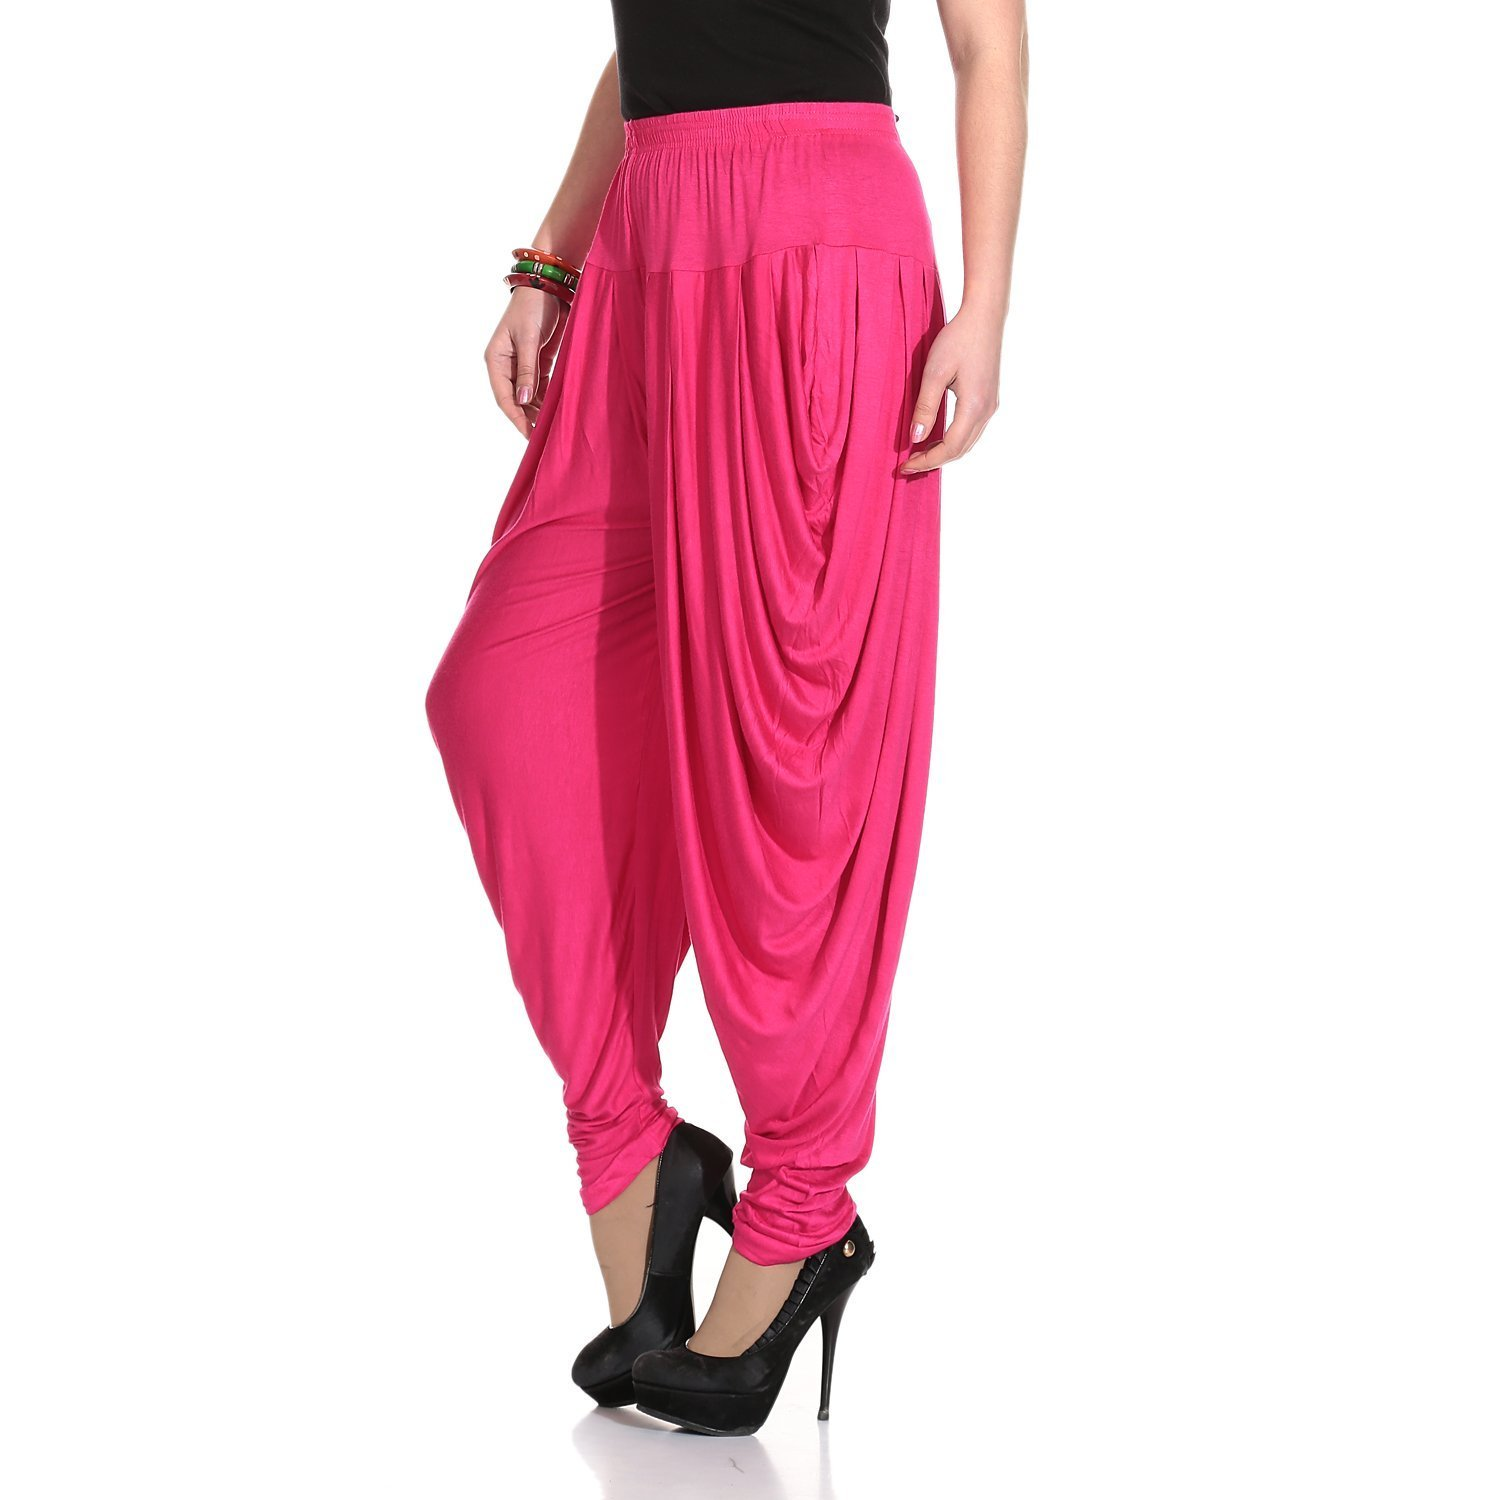 Ardour Dark Pink Relaxed Comfortable Cotton Blend Belly Dance Pants for Women- Free Size by Ardour (Image #2)